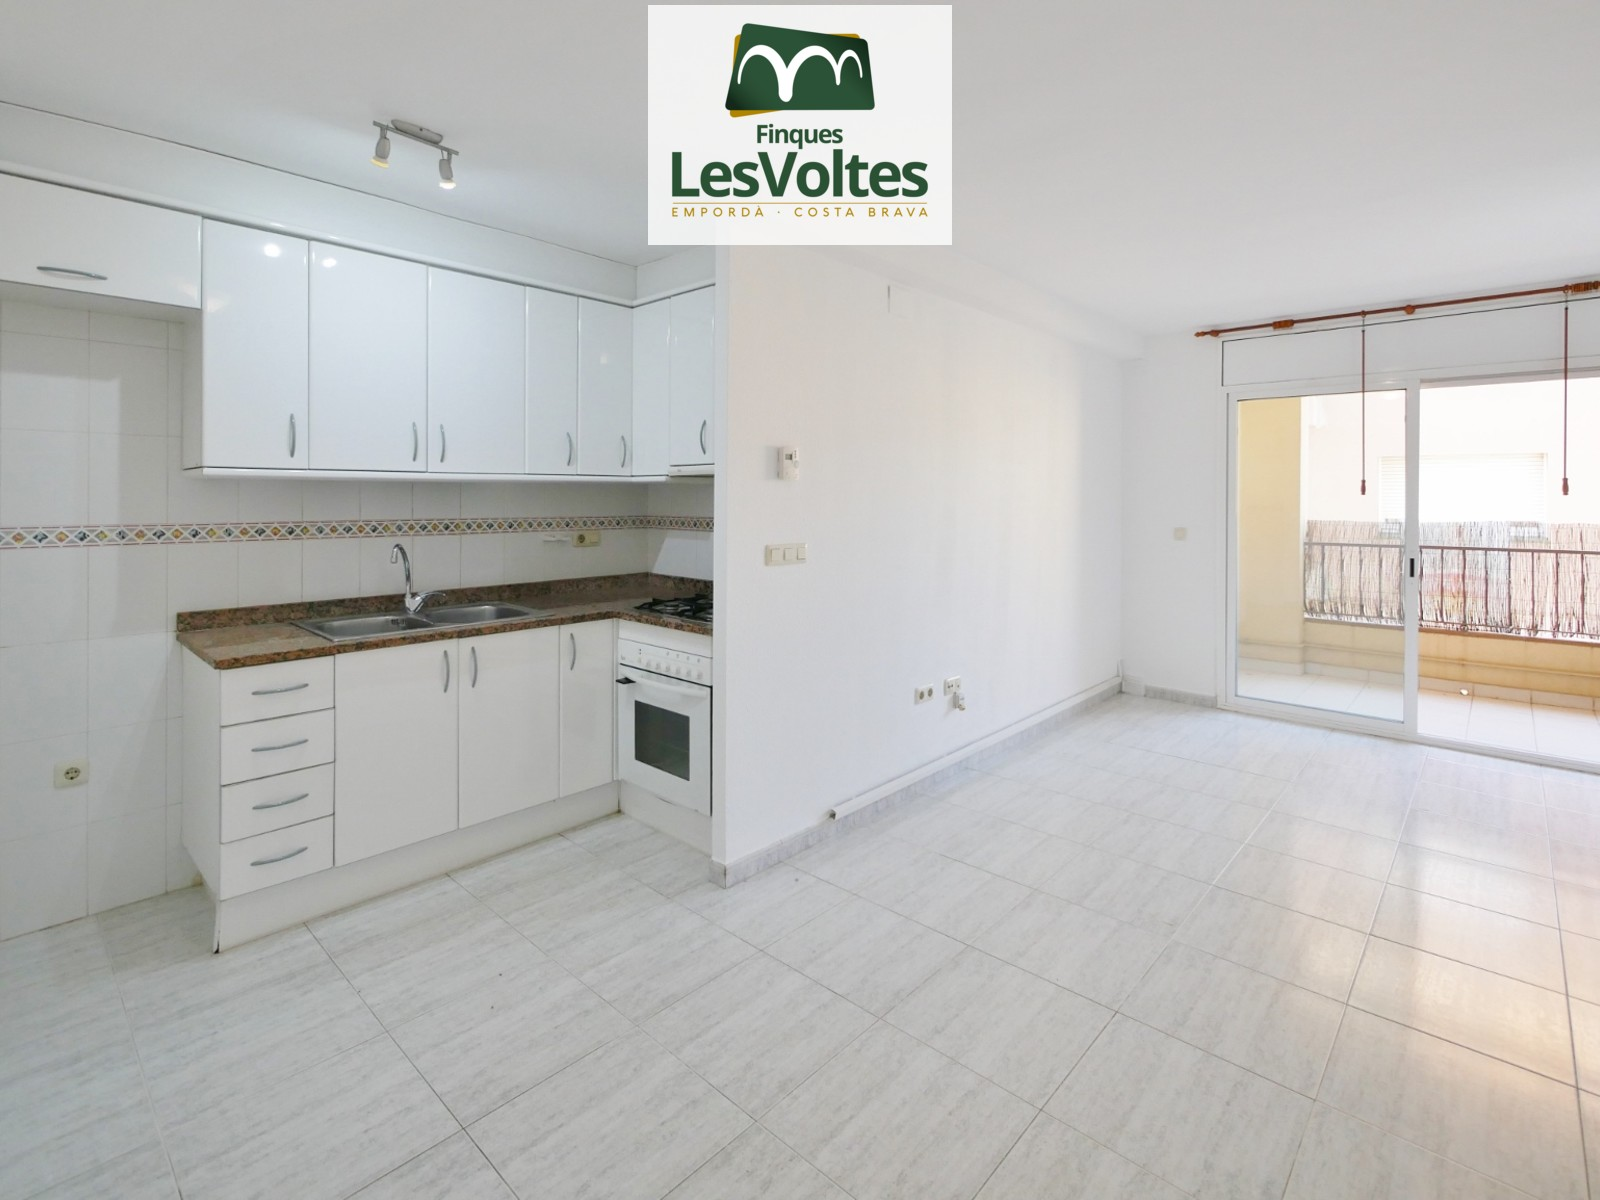 2-bedroom apartment with balcony for sale in Palafrugell. Good situation one step away from the center.